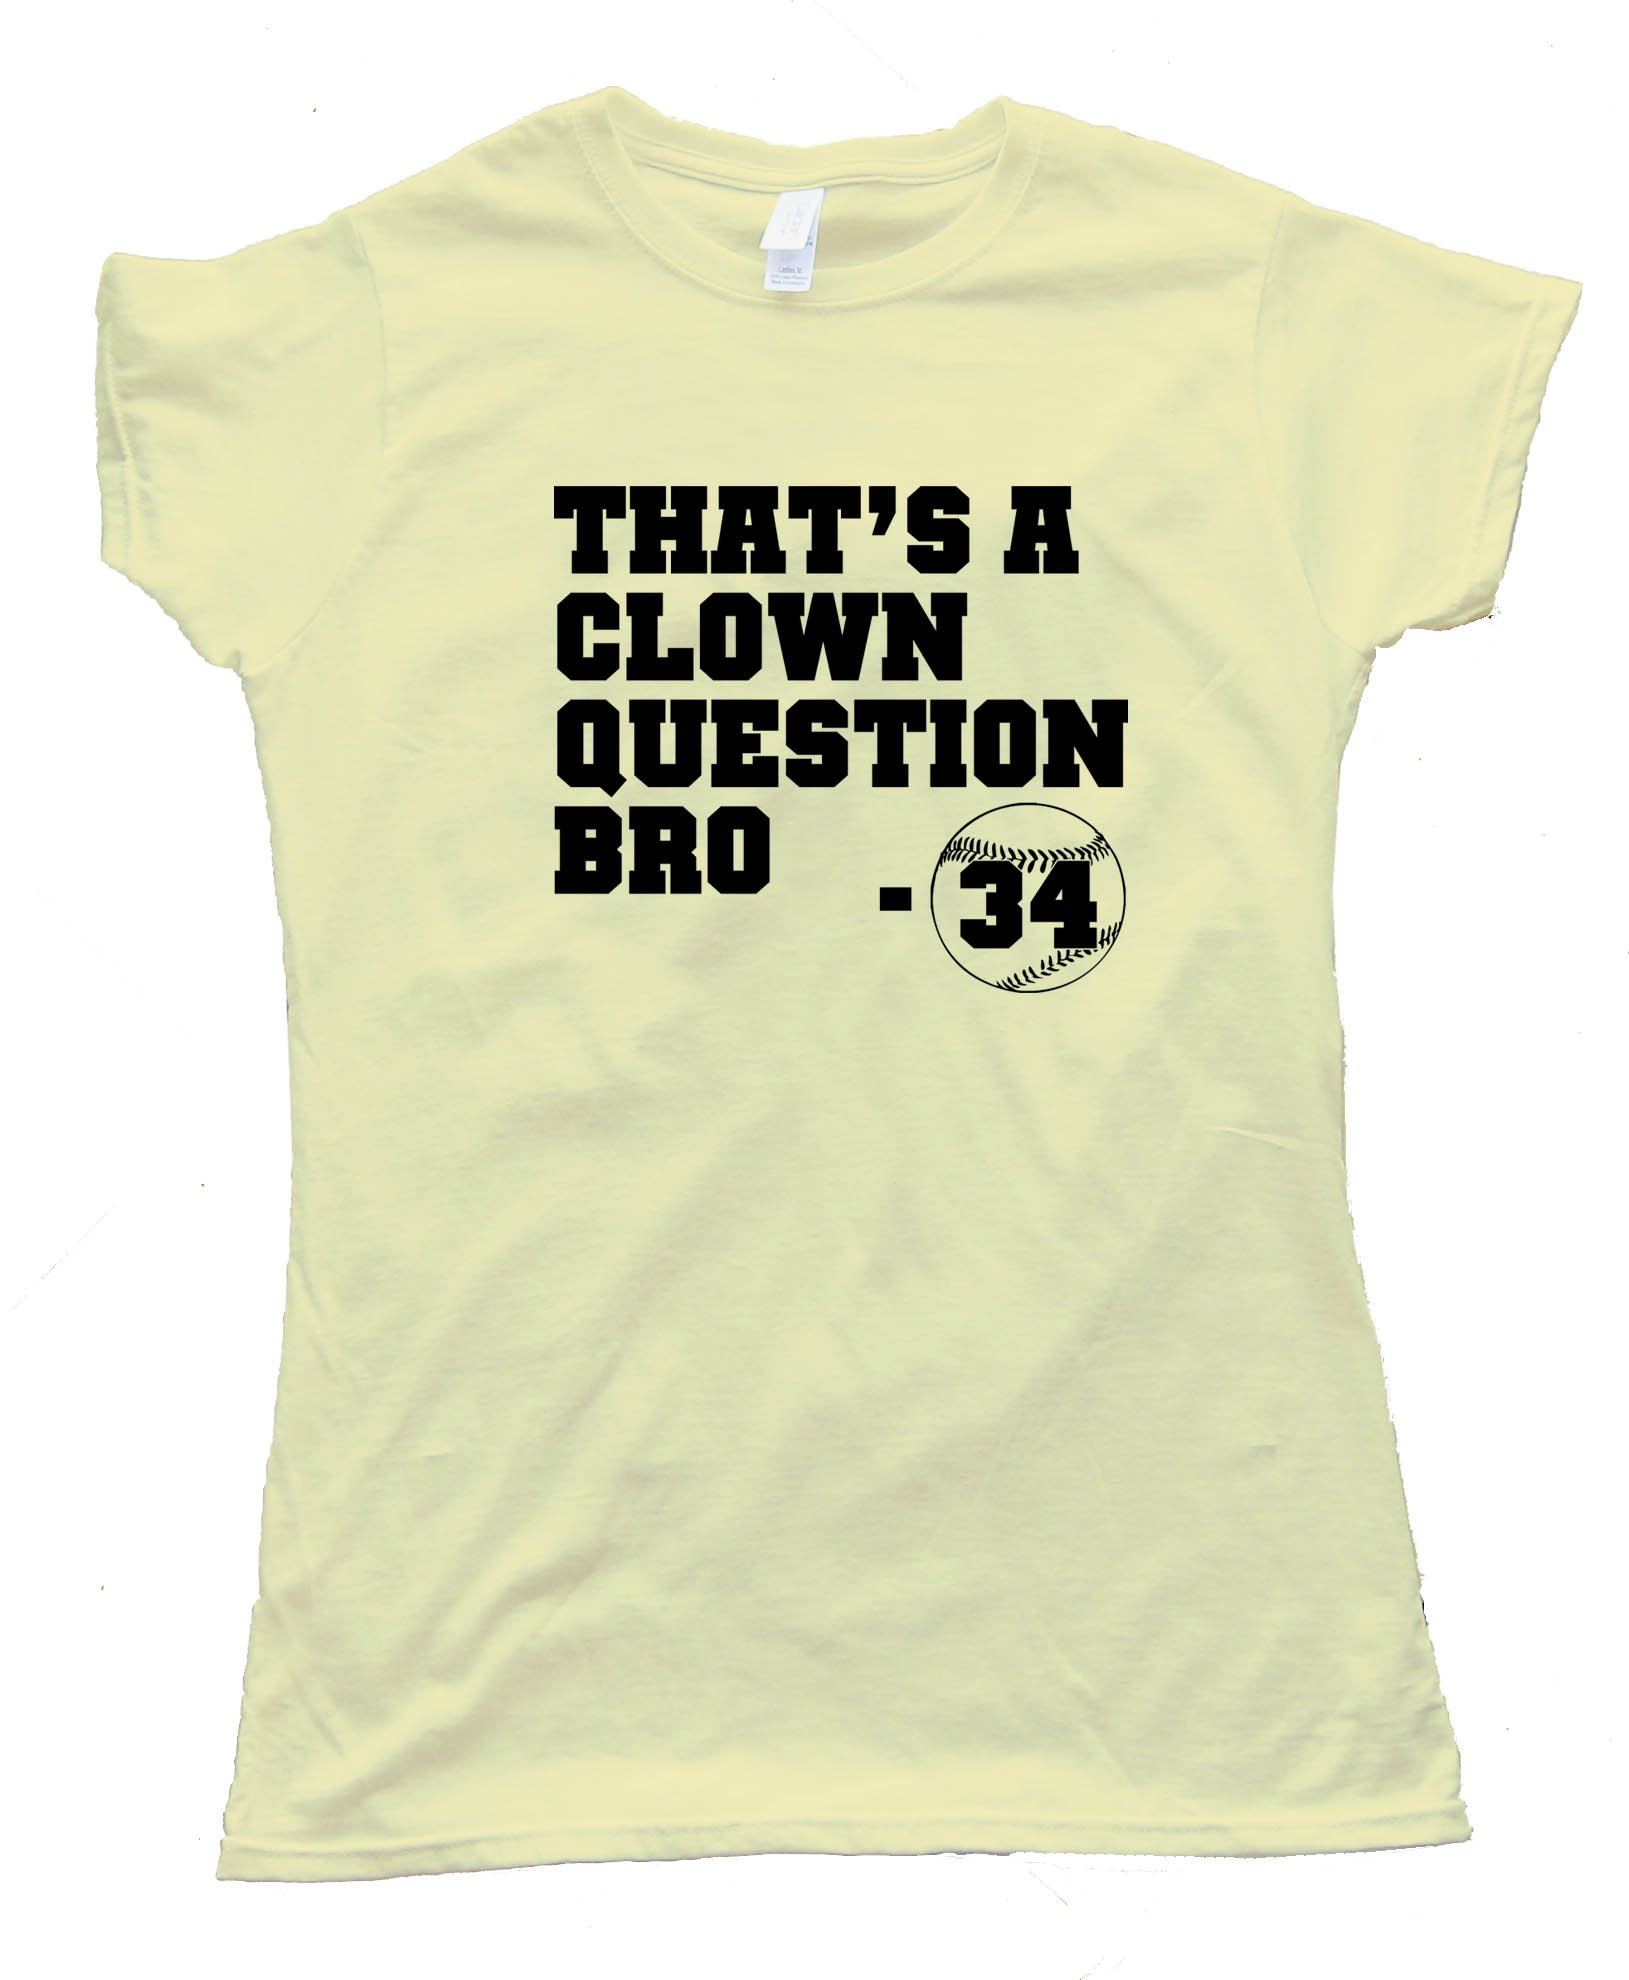 Womens Clown Question Bro - Bryce Harper - Tee Shirt